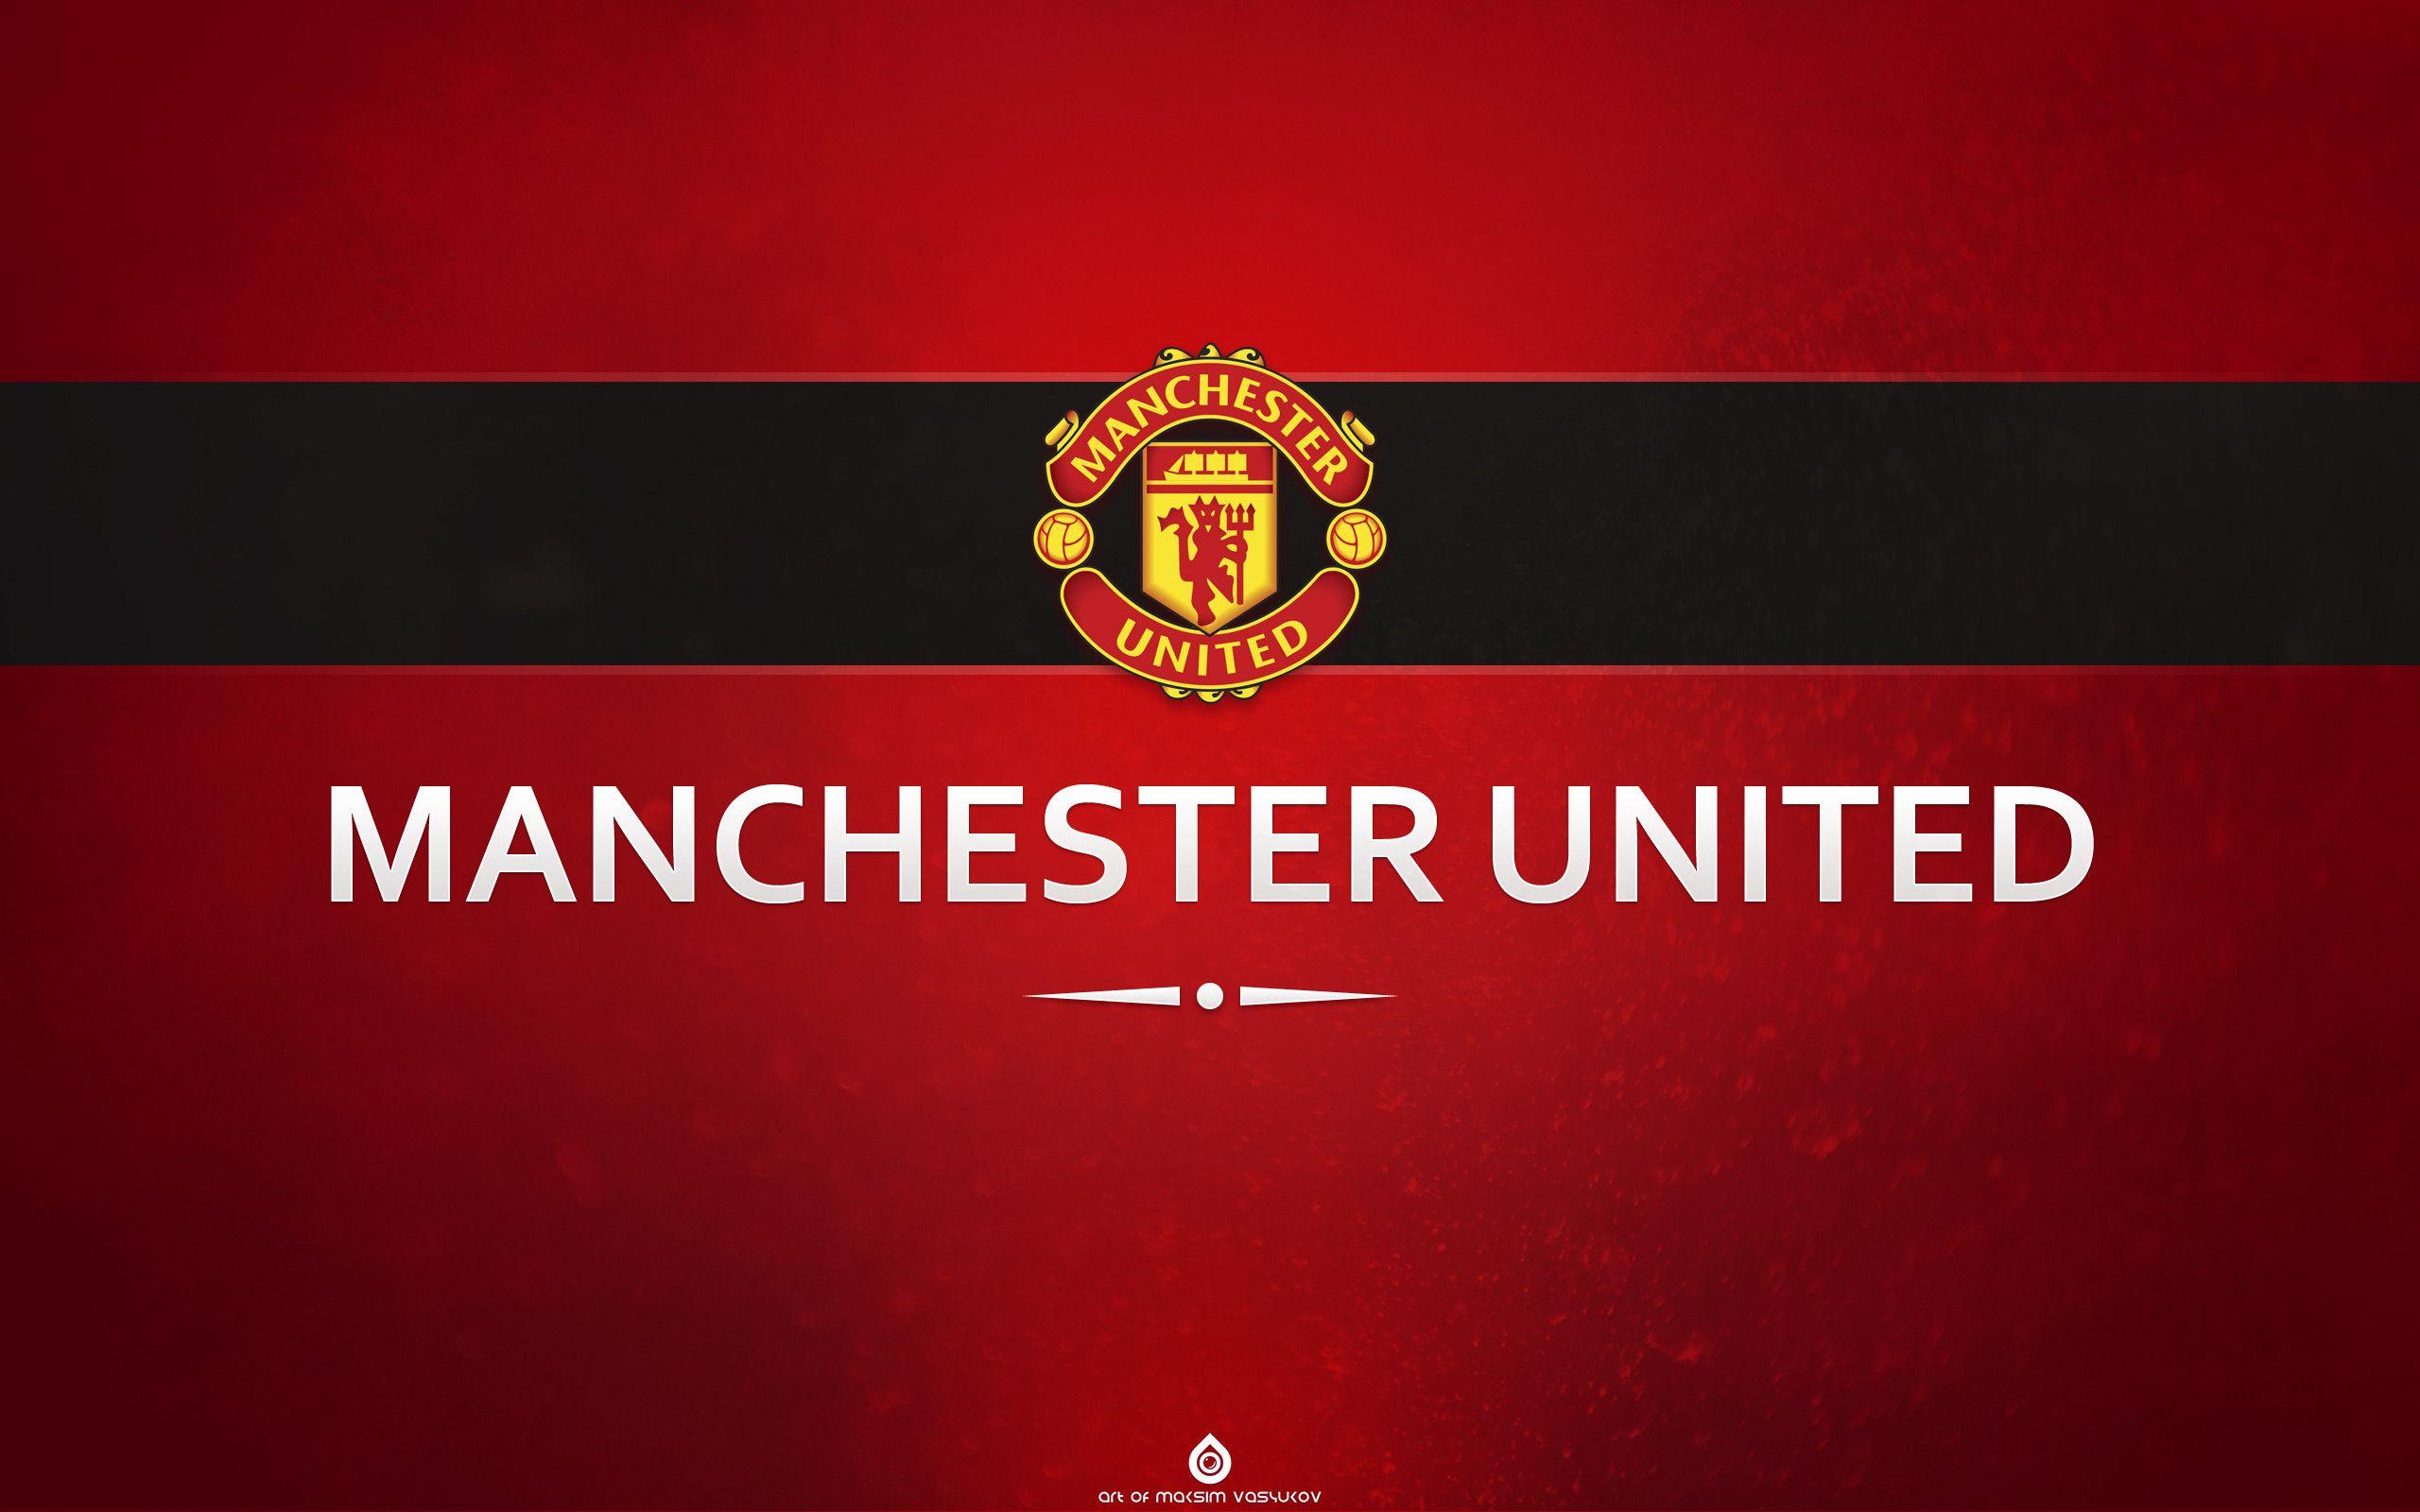 55 Manchester United Wallpapers   Download at WallpaperBro 2560x1600